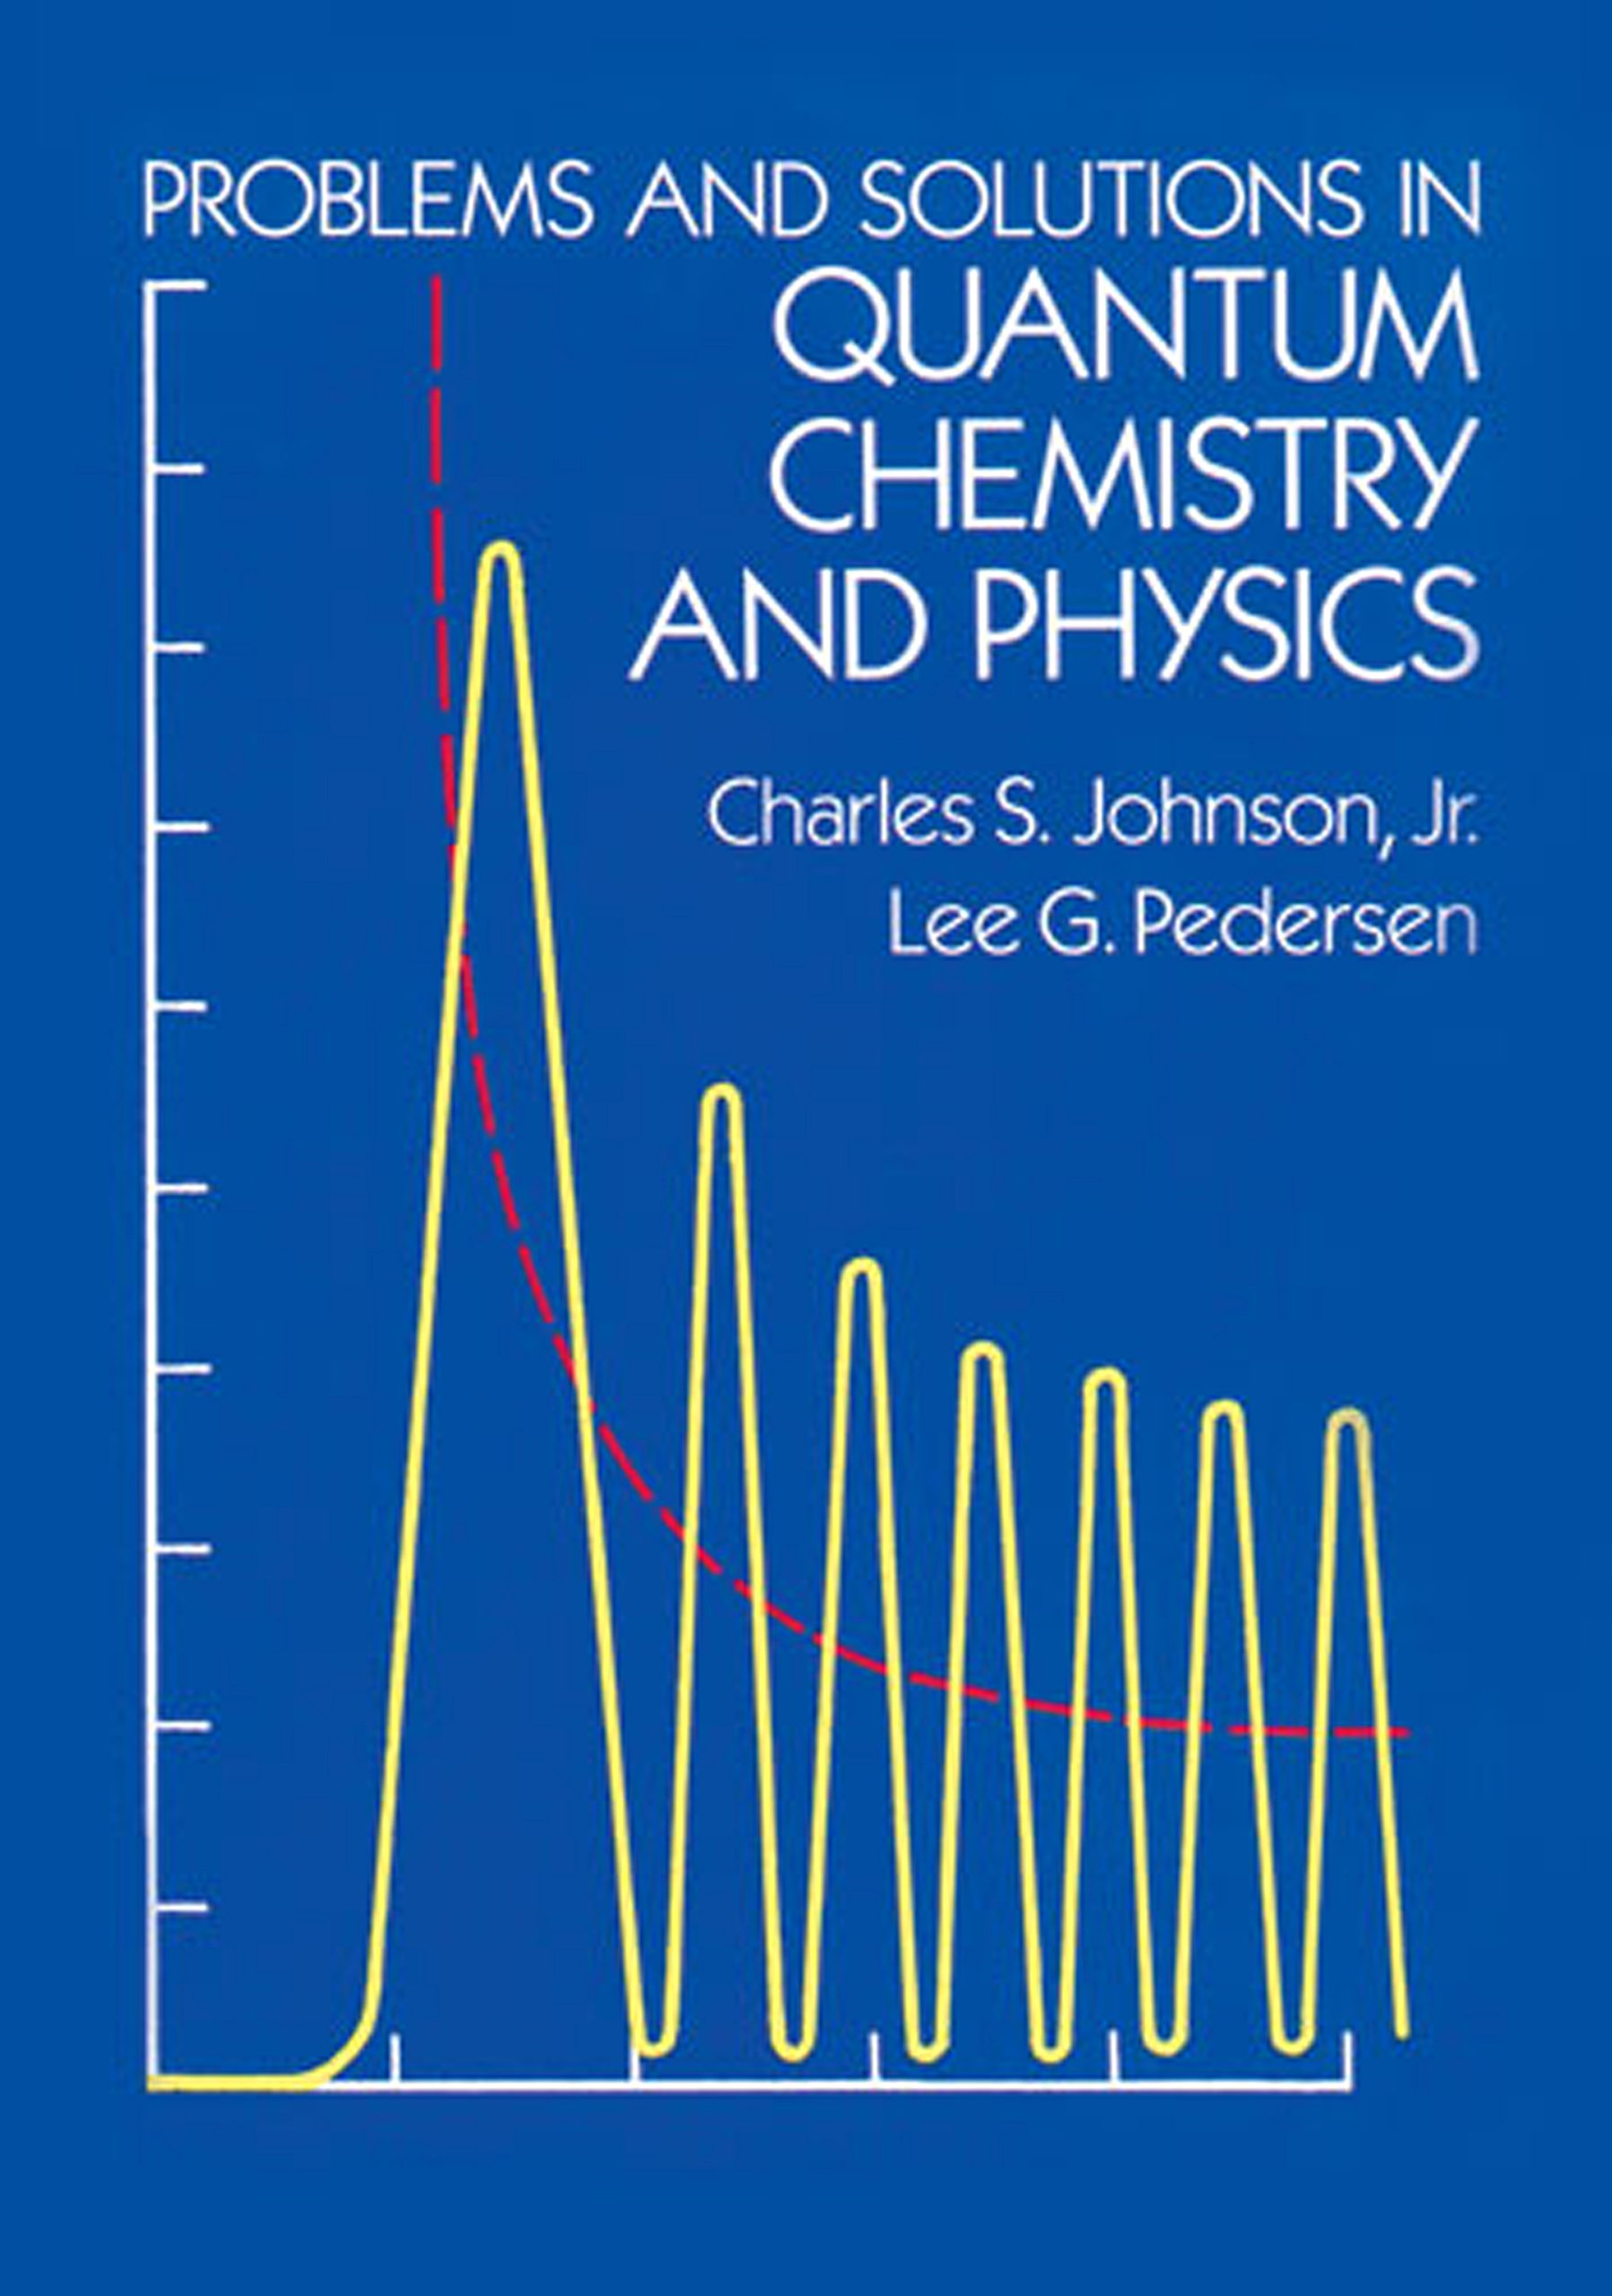 Problems and Solutions in Quantum Chemistry and Physics (Dover Books on  Chemistry): Charles S. Johnson Jr., Lee G. Pedersen: 9780486652368:  Amazon.com: ...